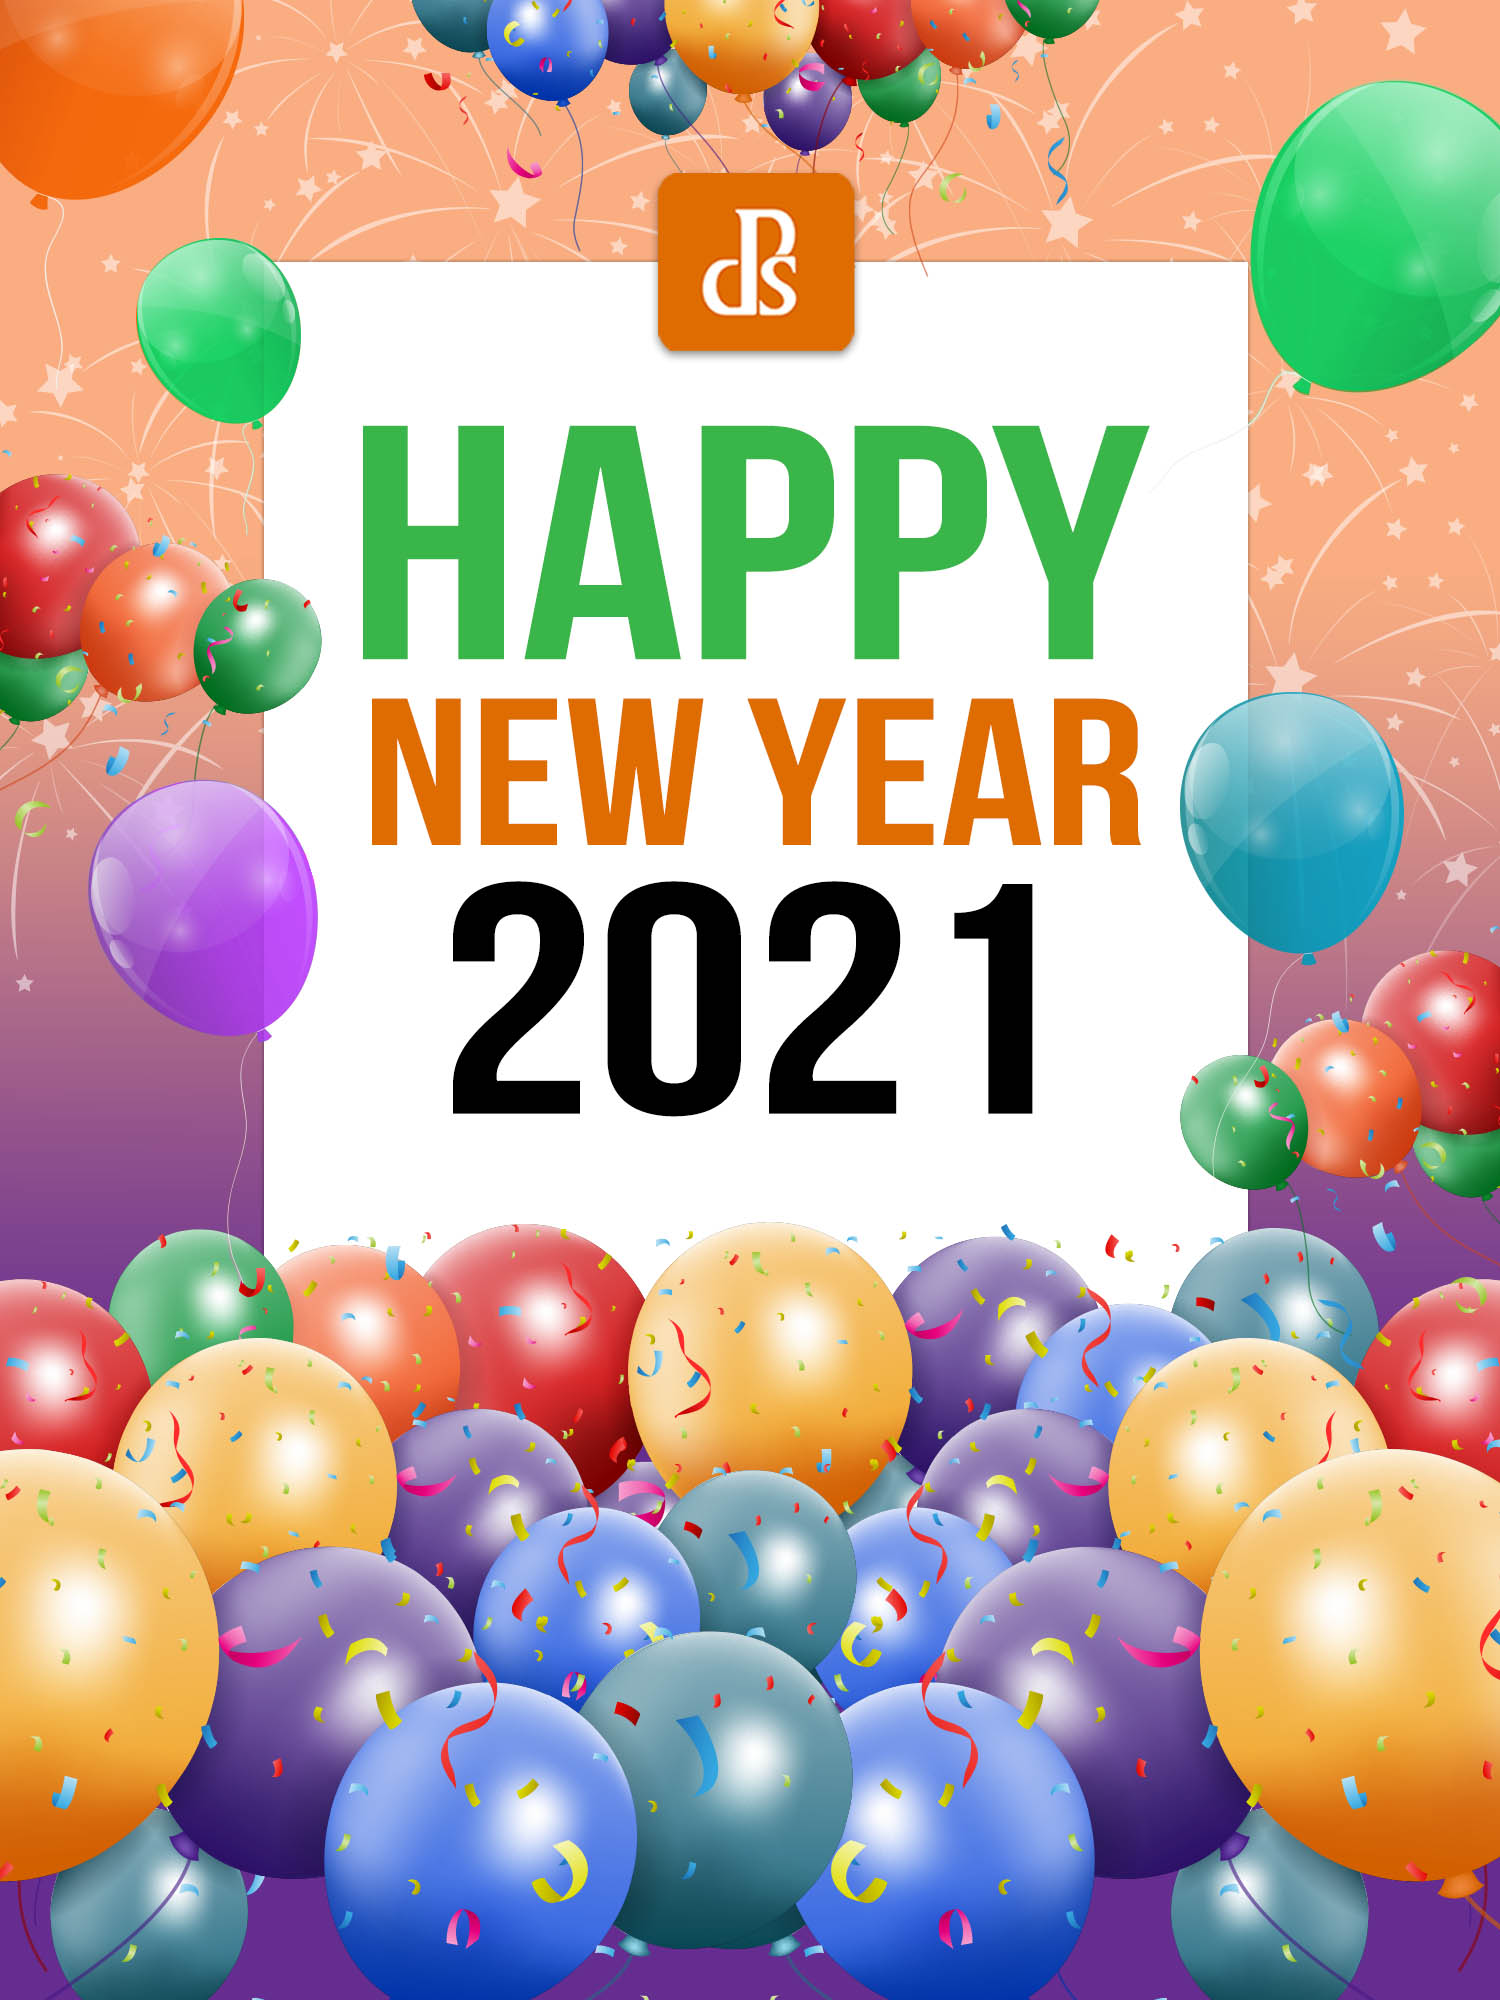 Happy New Year 2021 from the dPS team